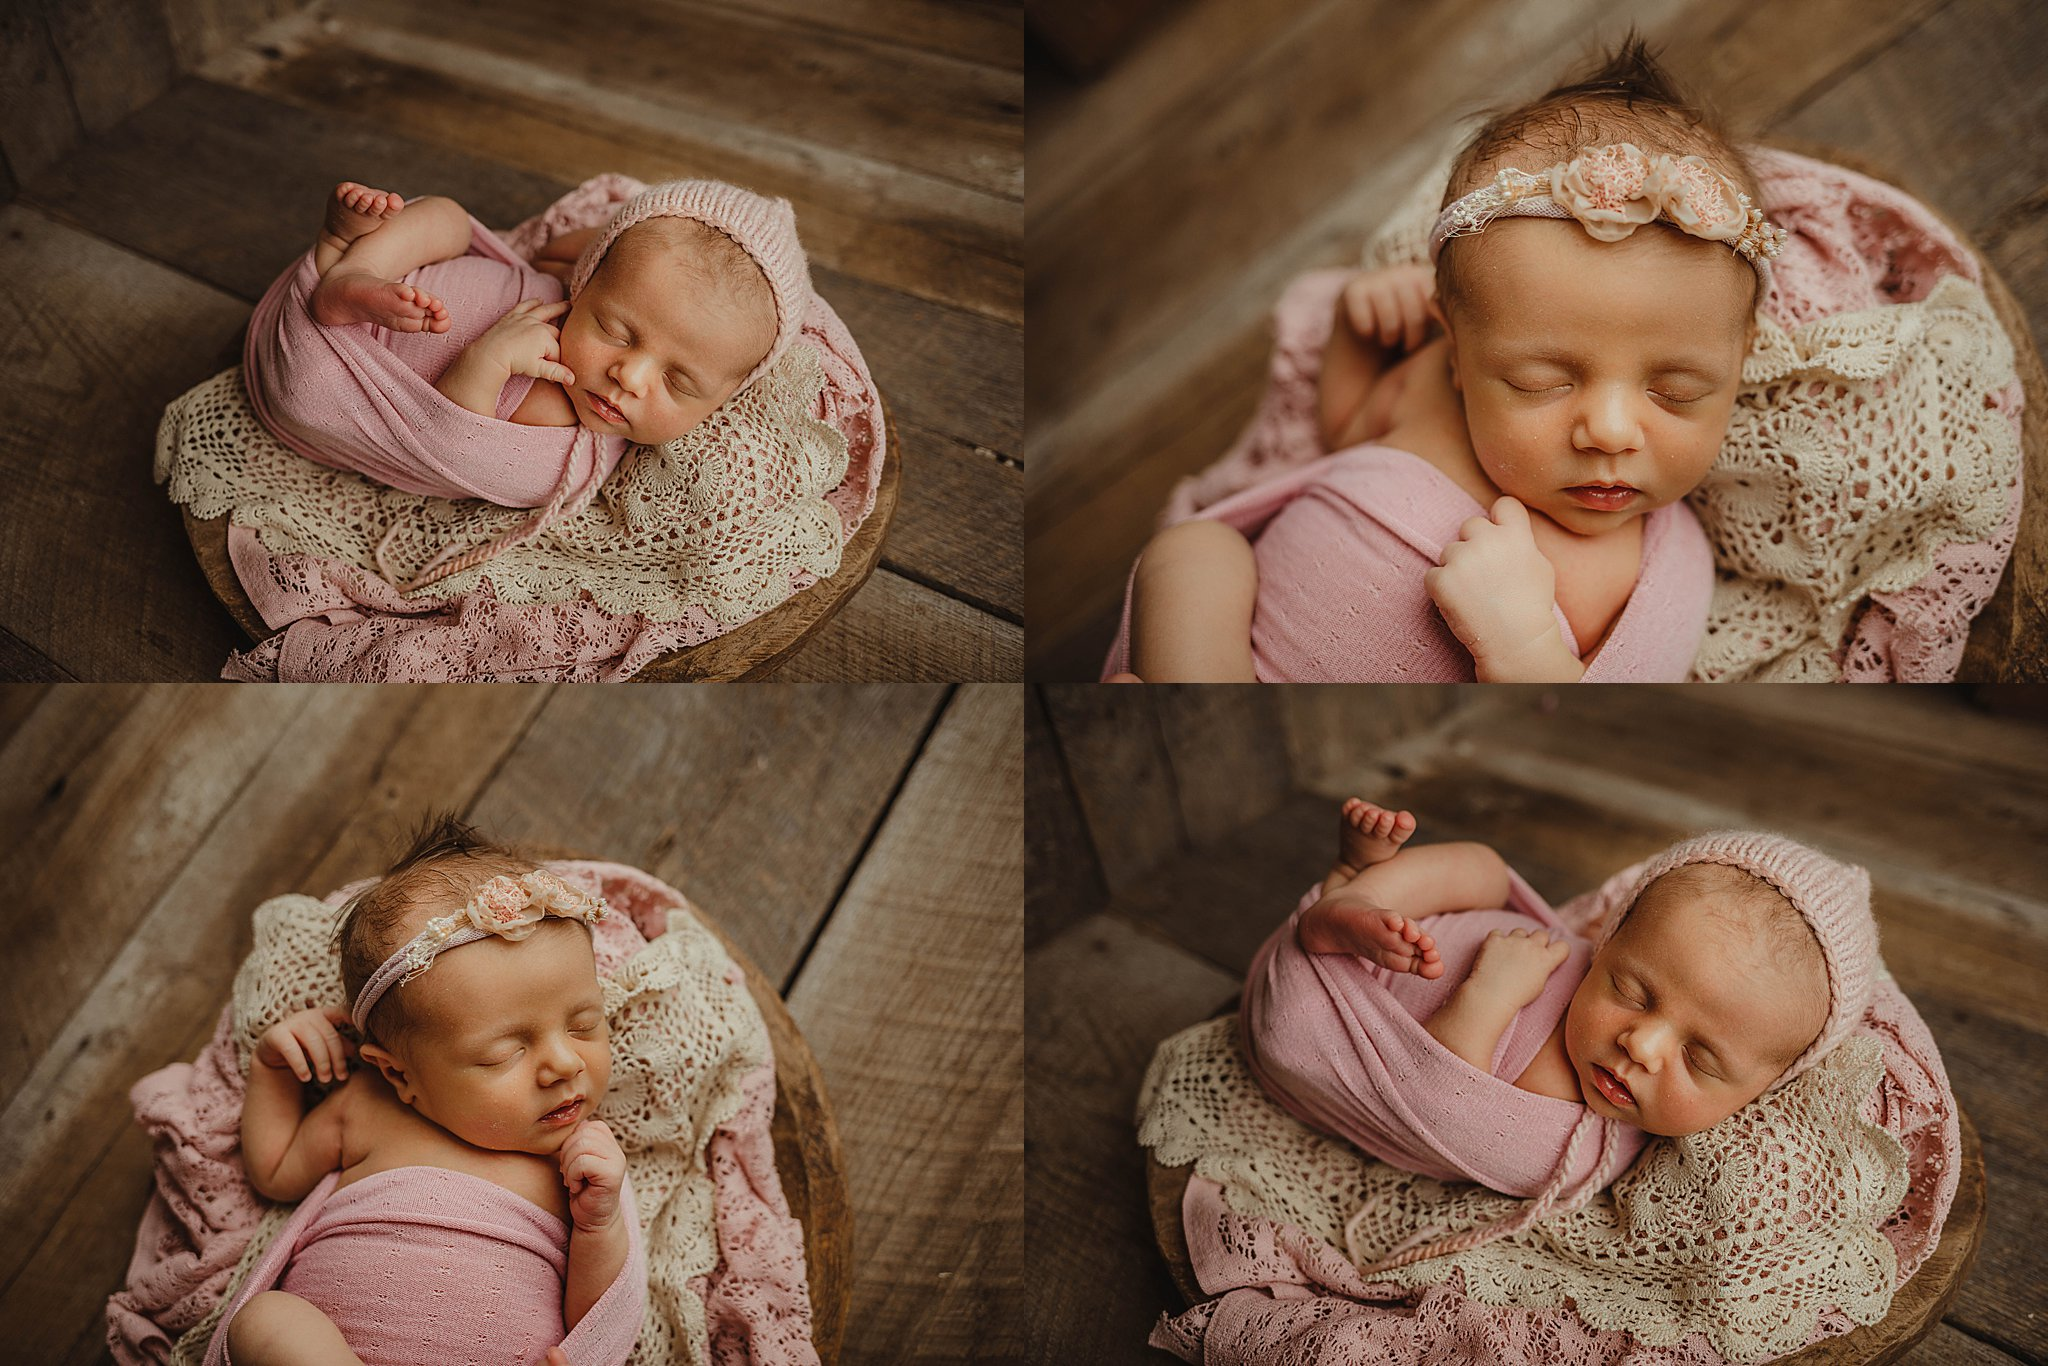 osage-beach-missouri-newborn-photo-studio-flowers-03-11-2019-2.jpg